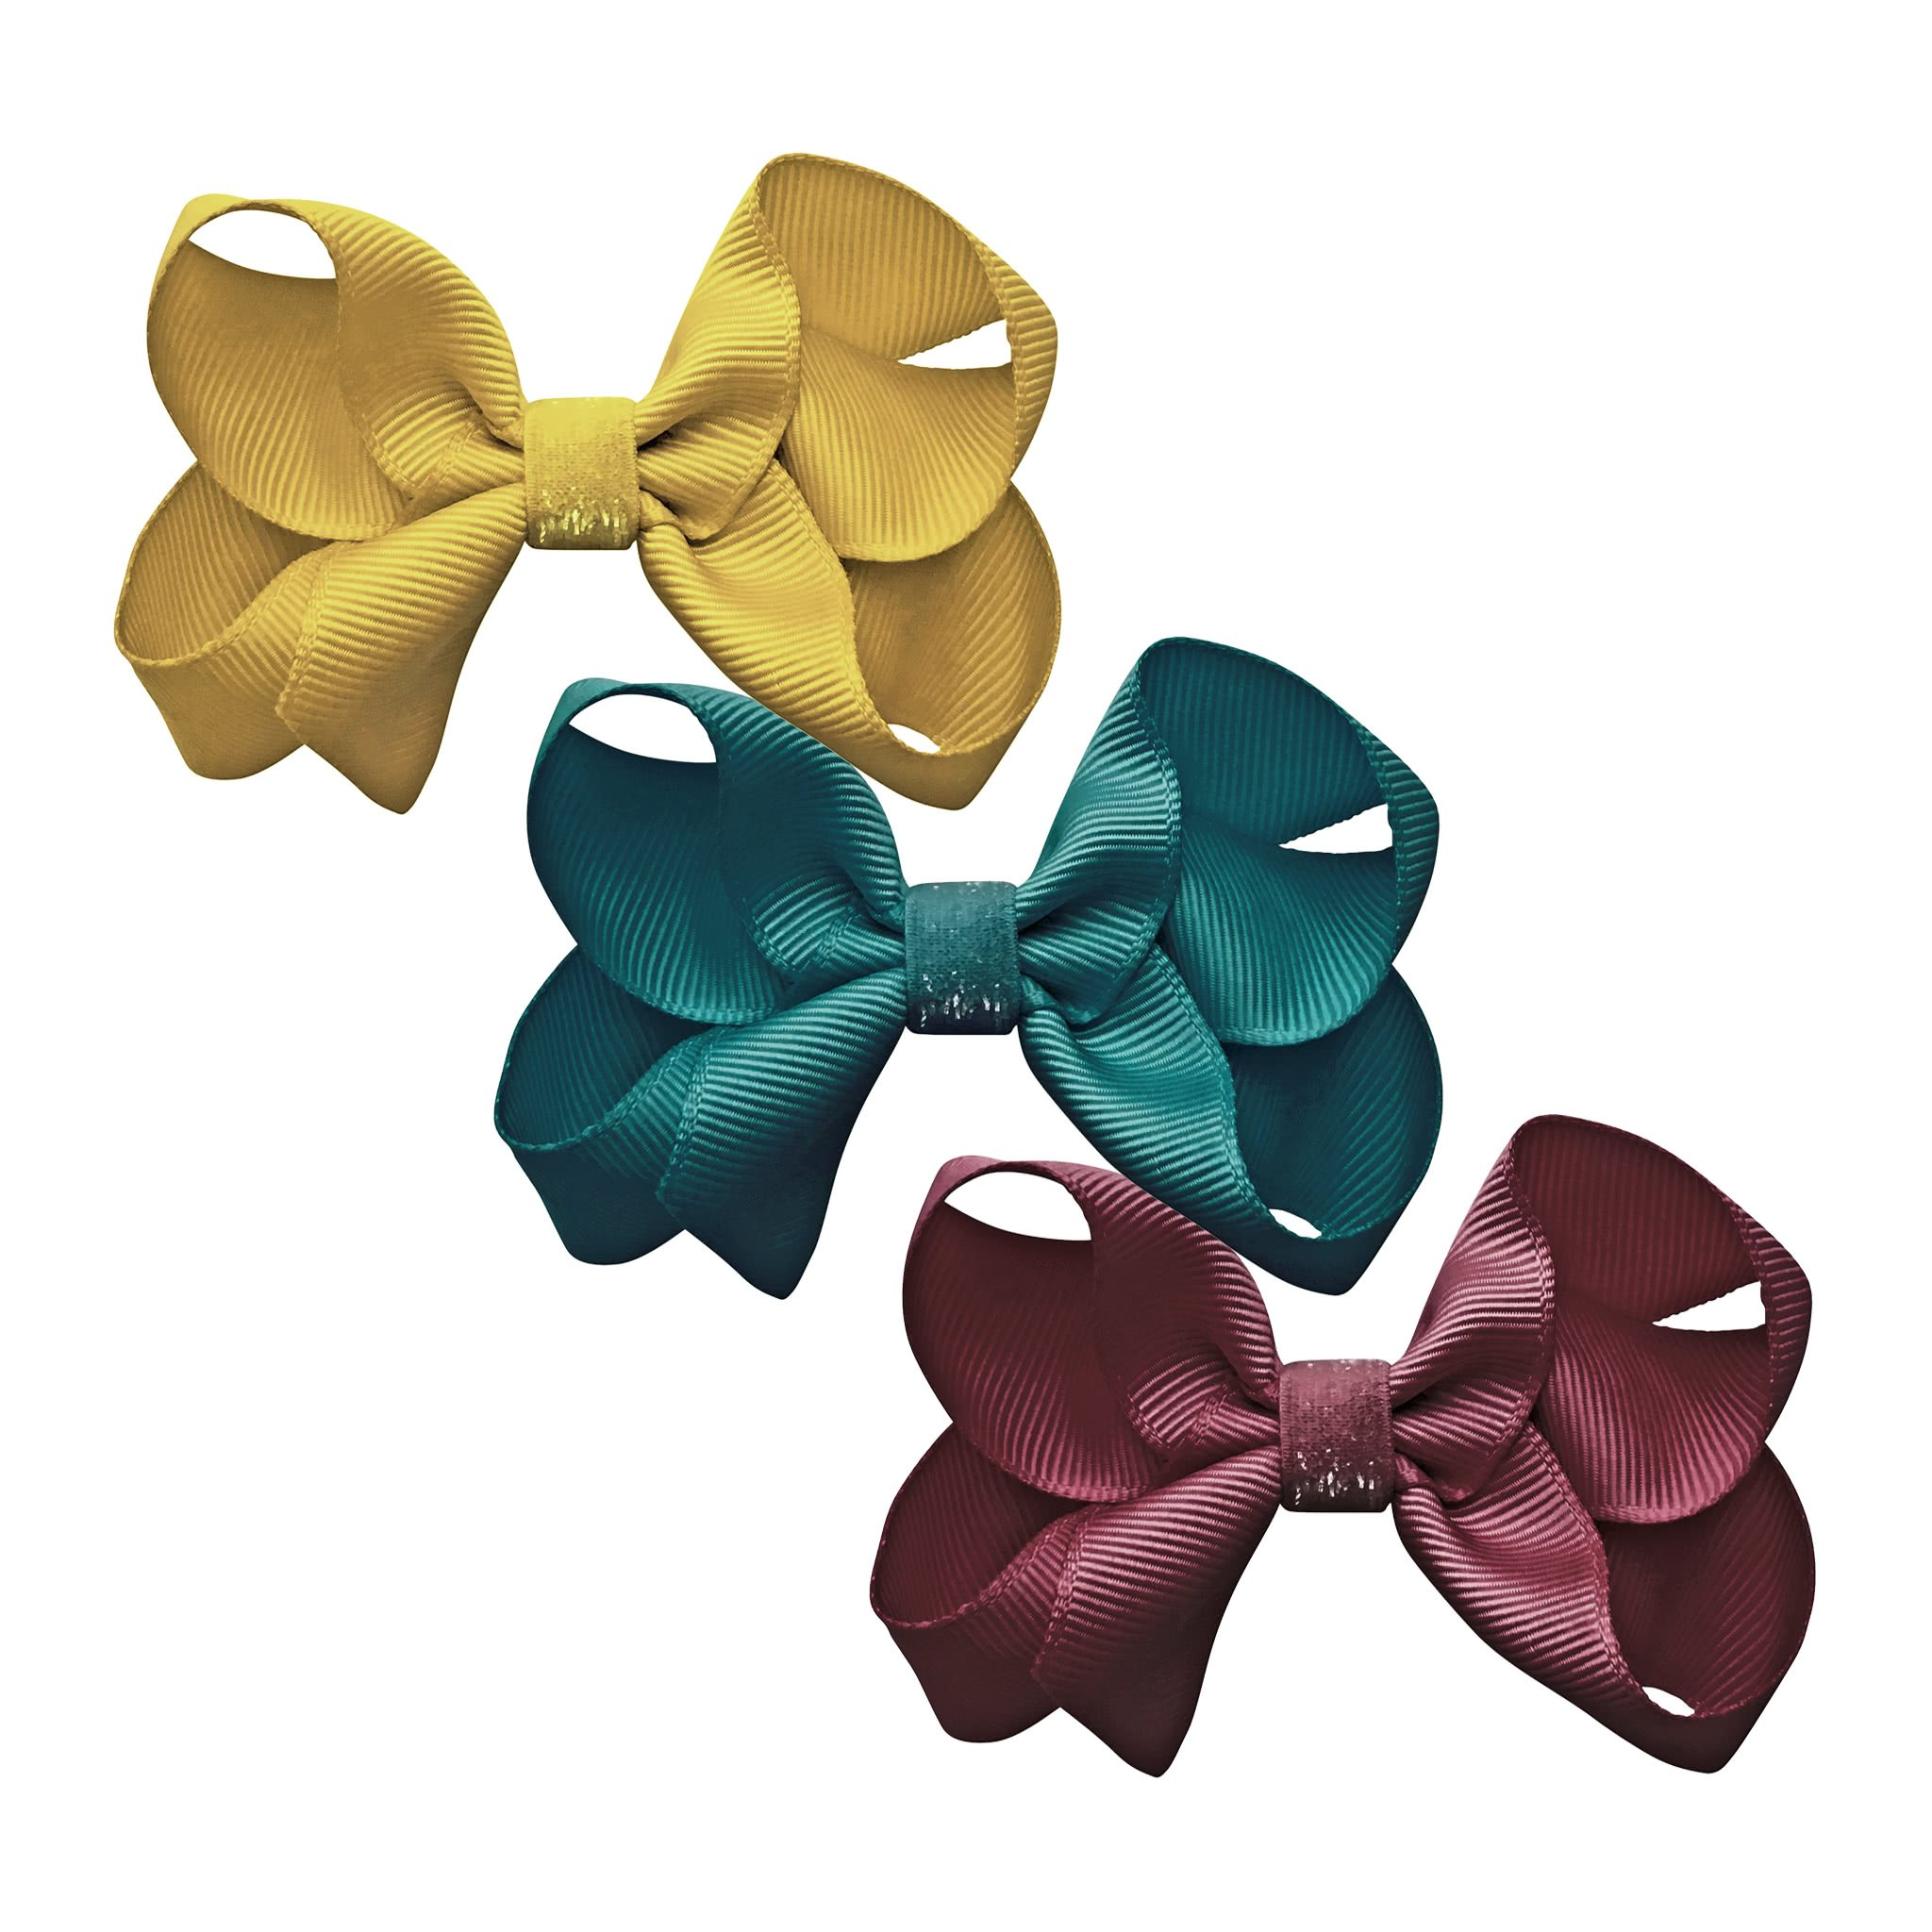 Image of Milledeux® gift set - Colored Glitter Collection - 3 Medium boutique bows - A129